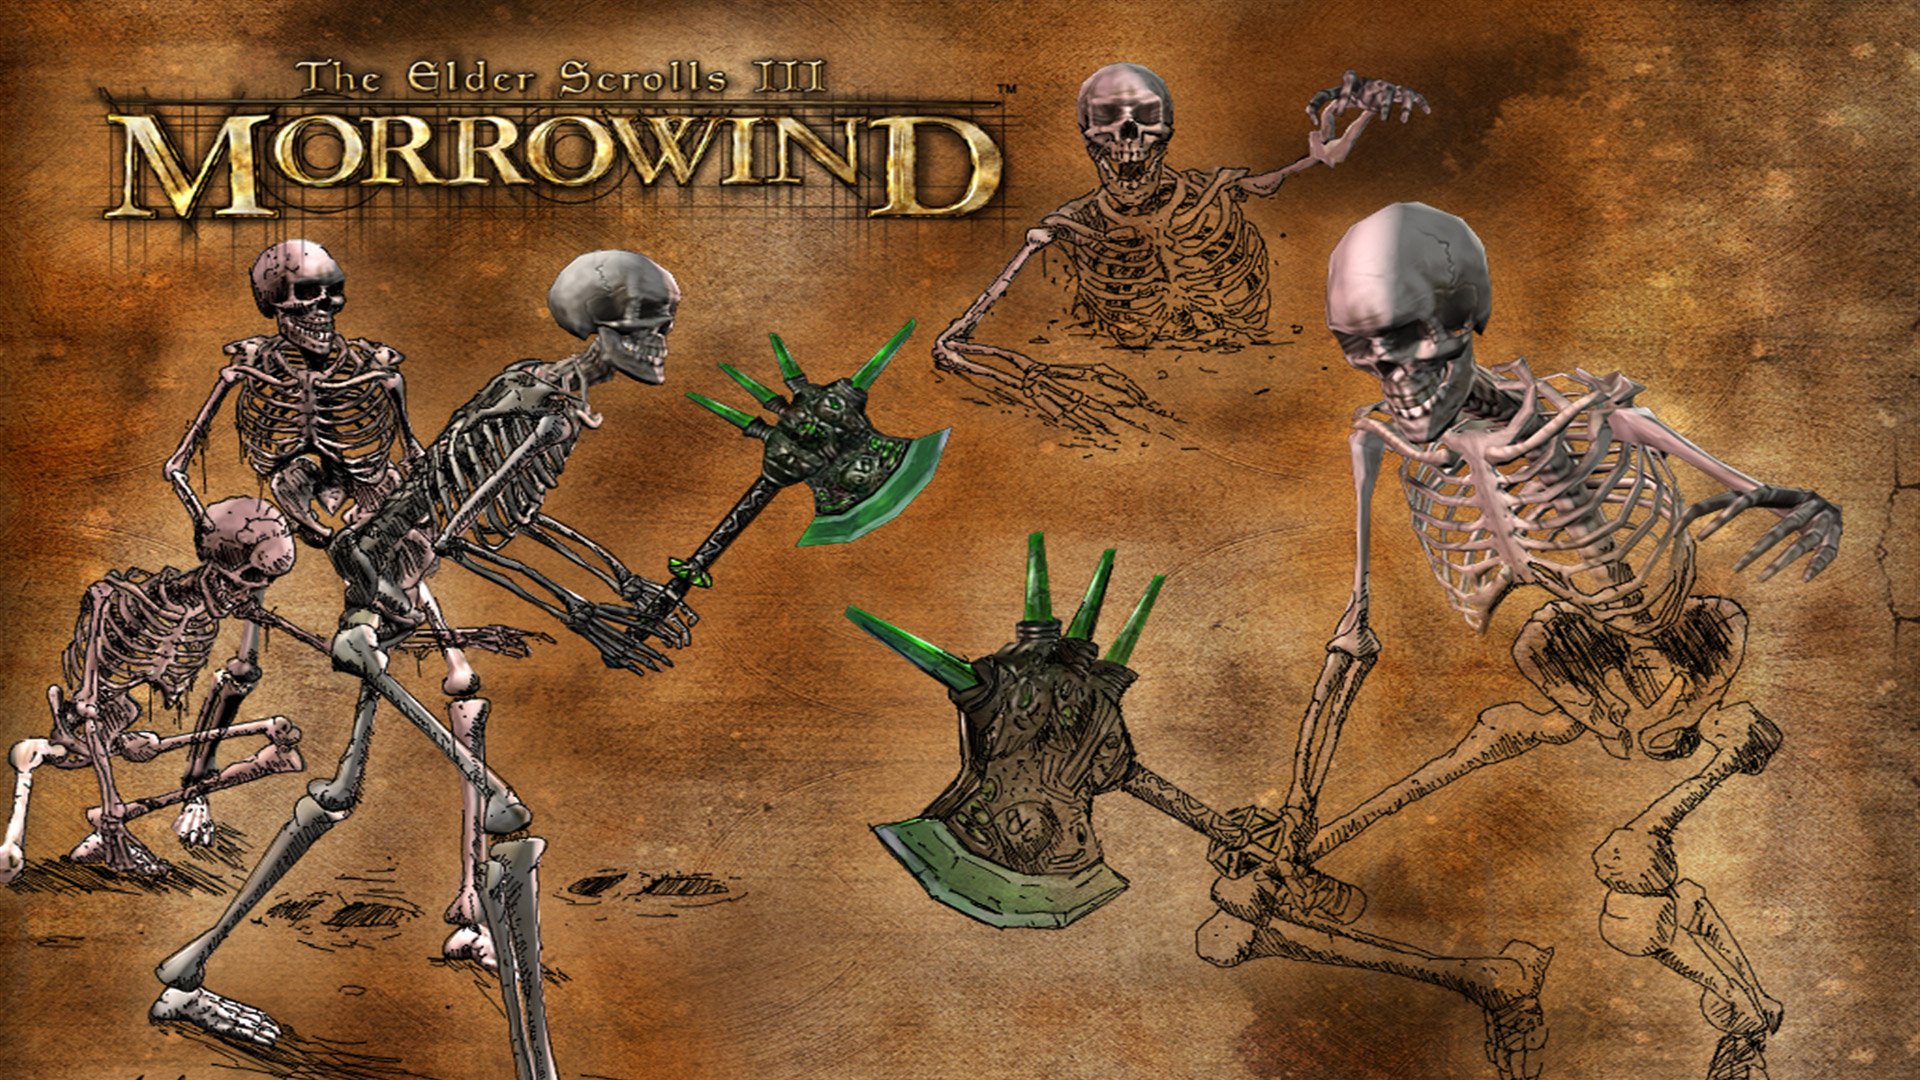 The Elder Scrolls III: Morrowind Wallpaper in 1920x1080